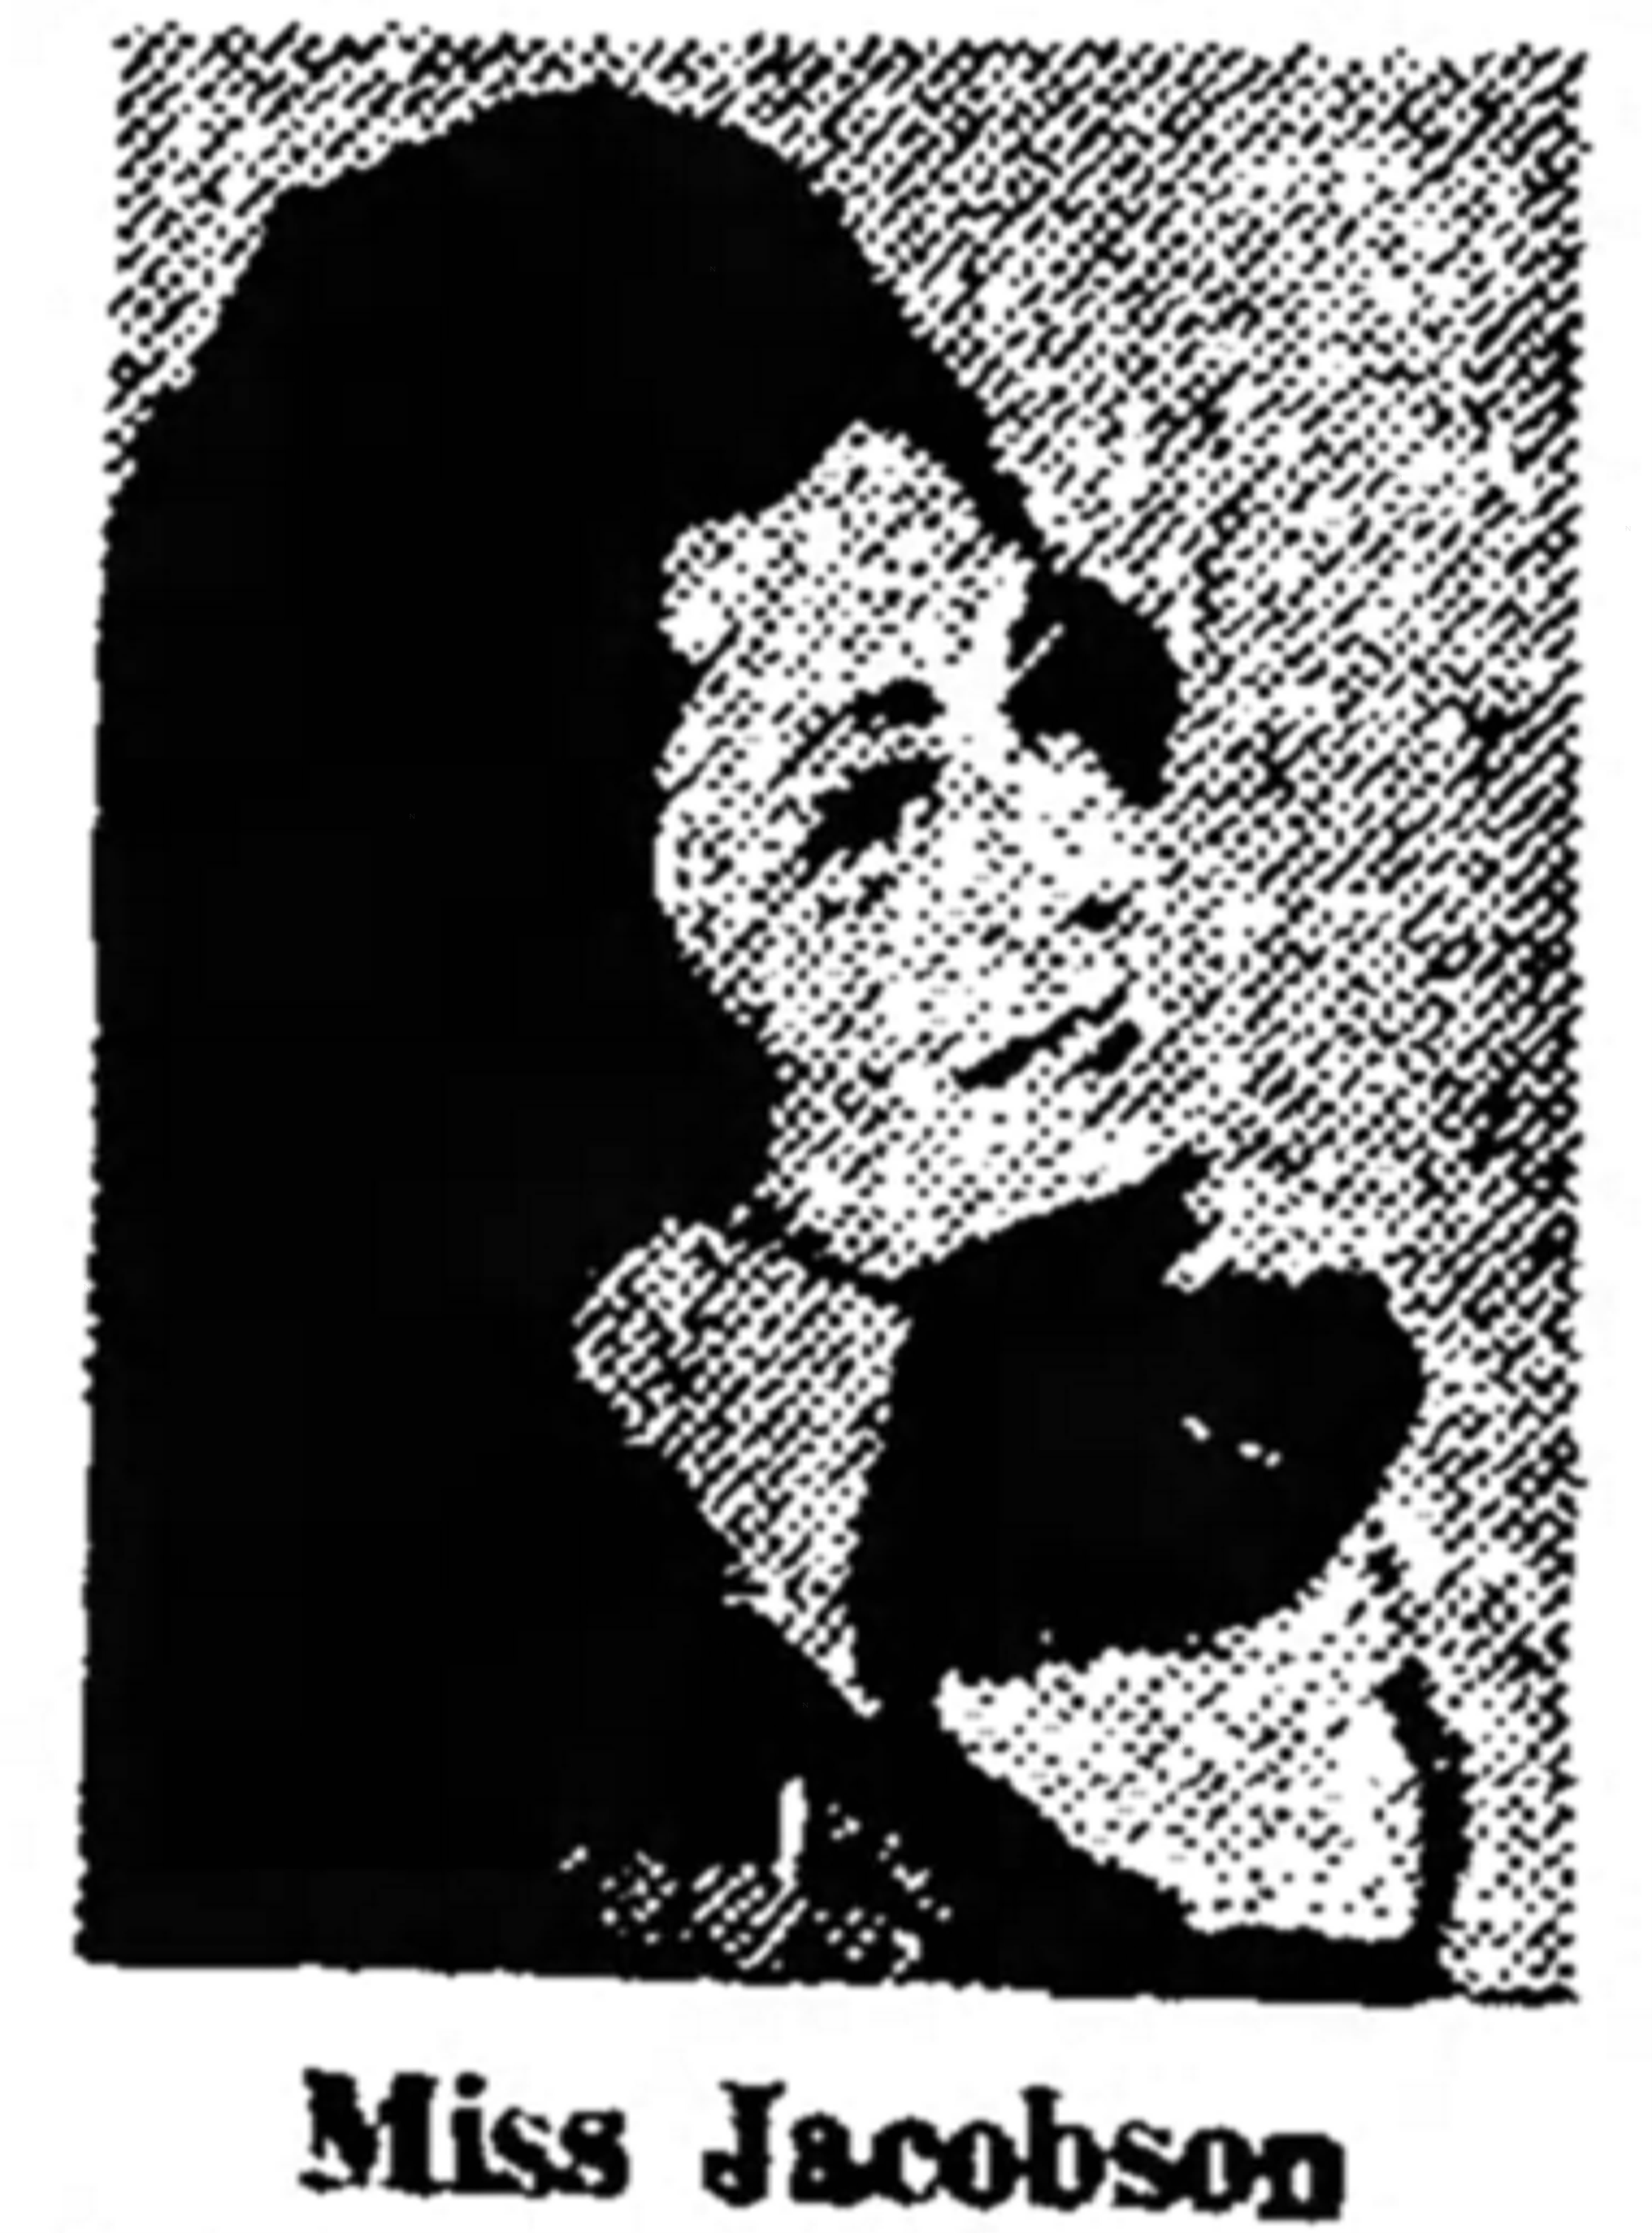 Image of Ethel Jacobson